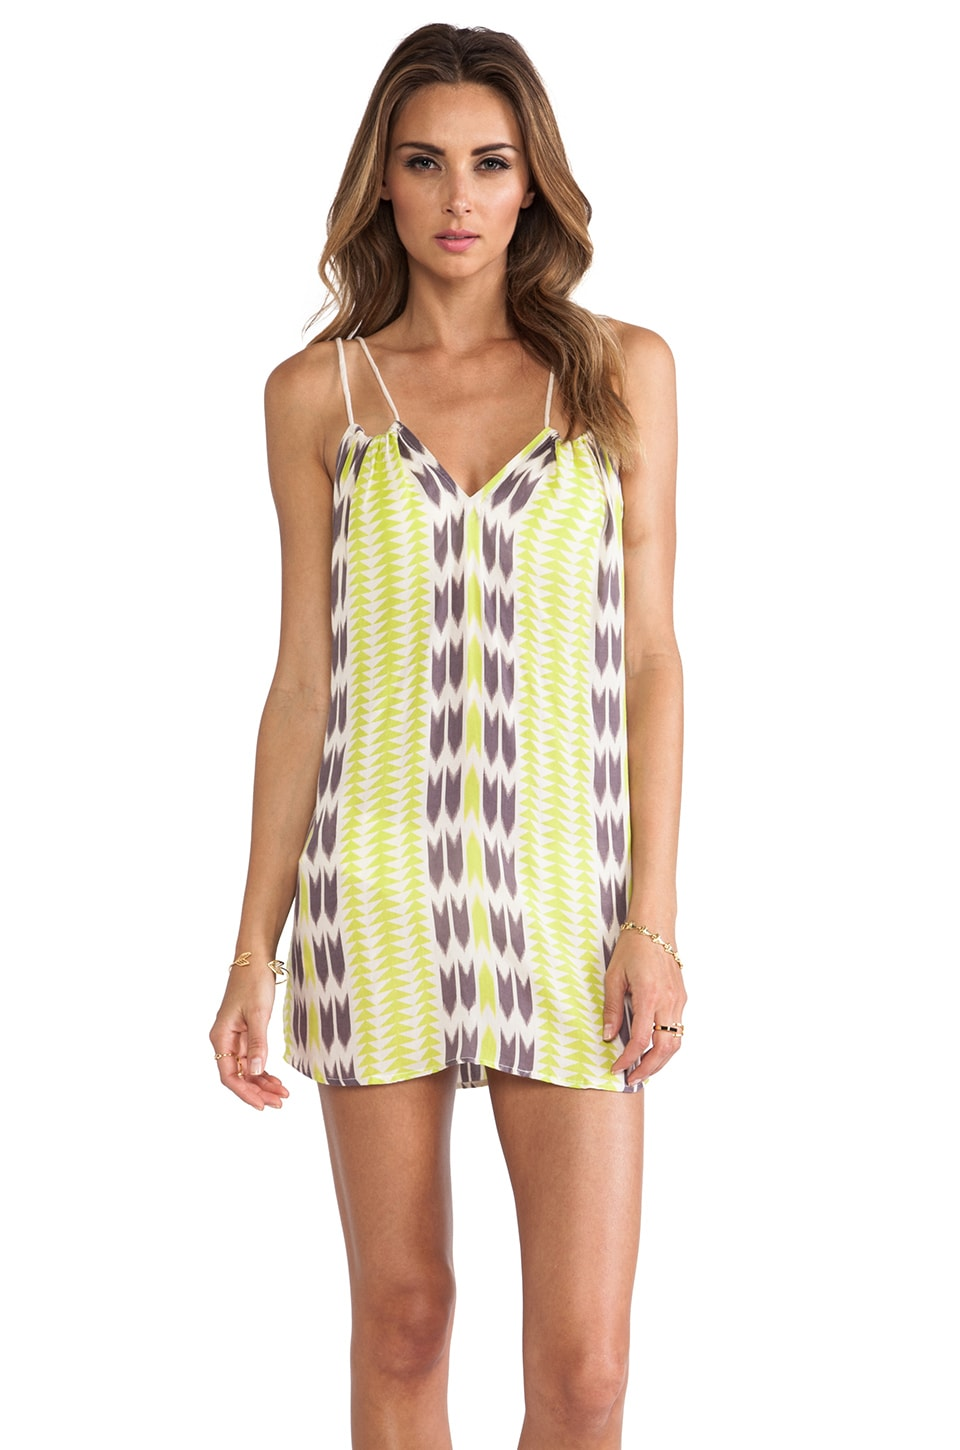 Acacia Swimwear Capri Dress in Arrow